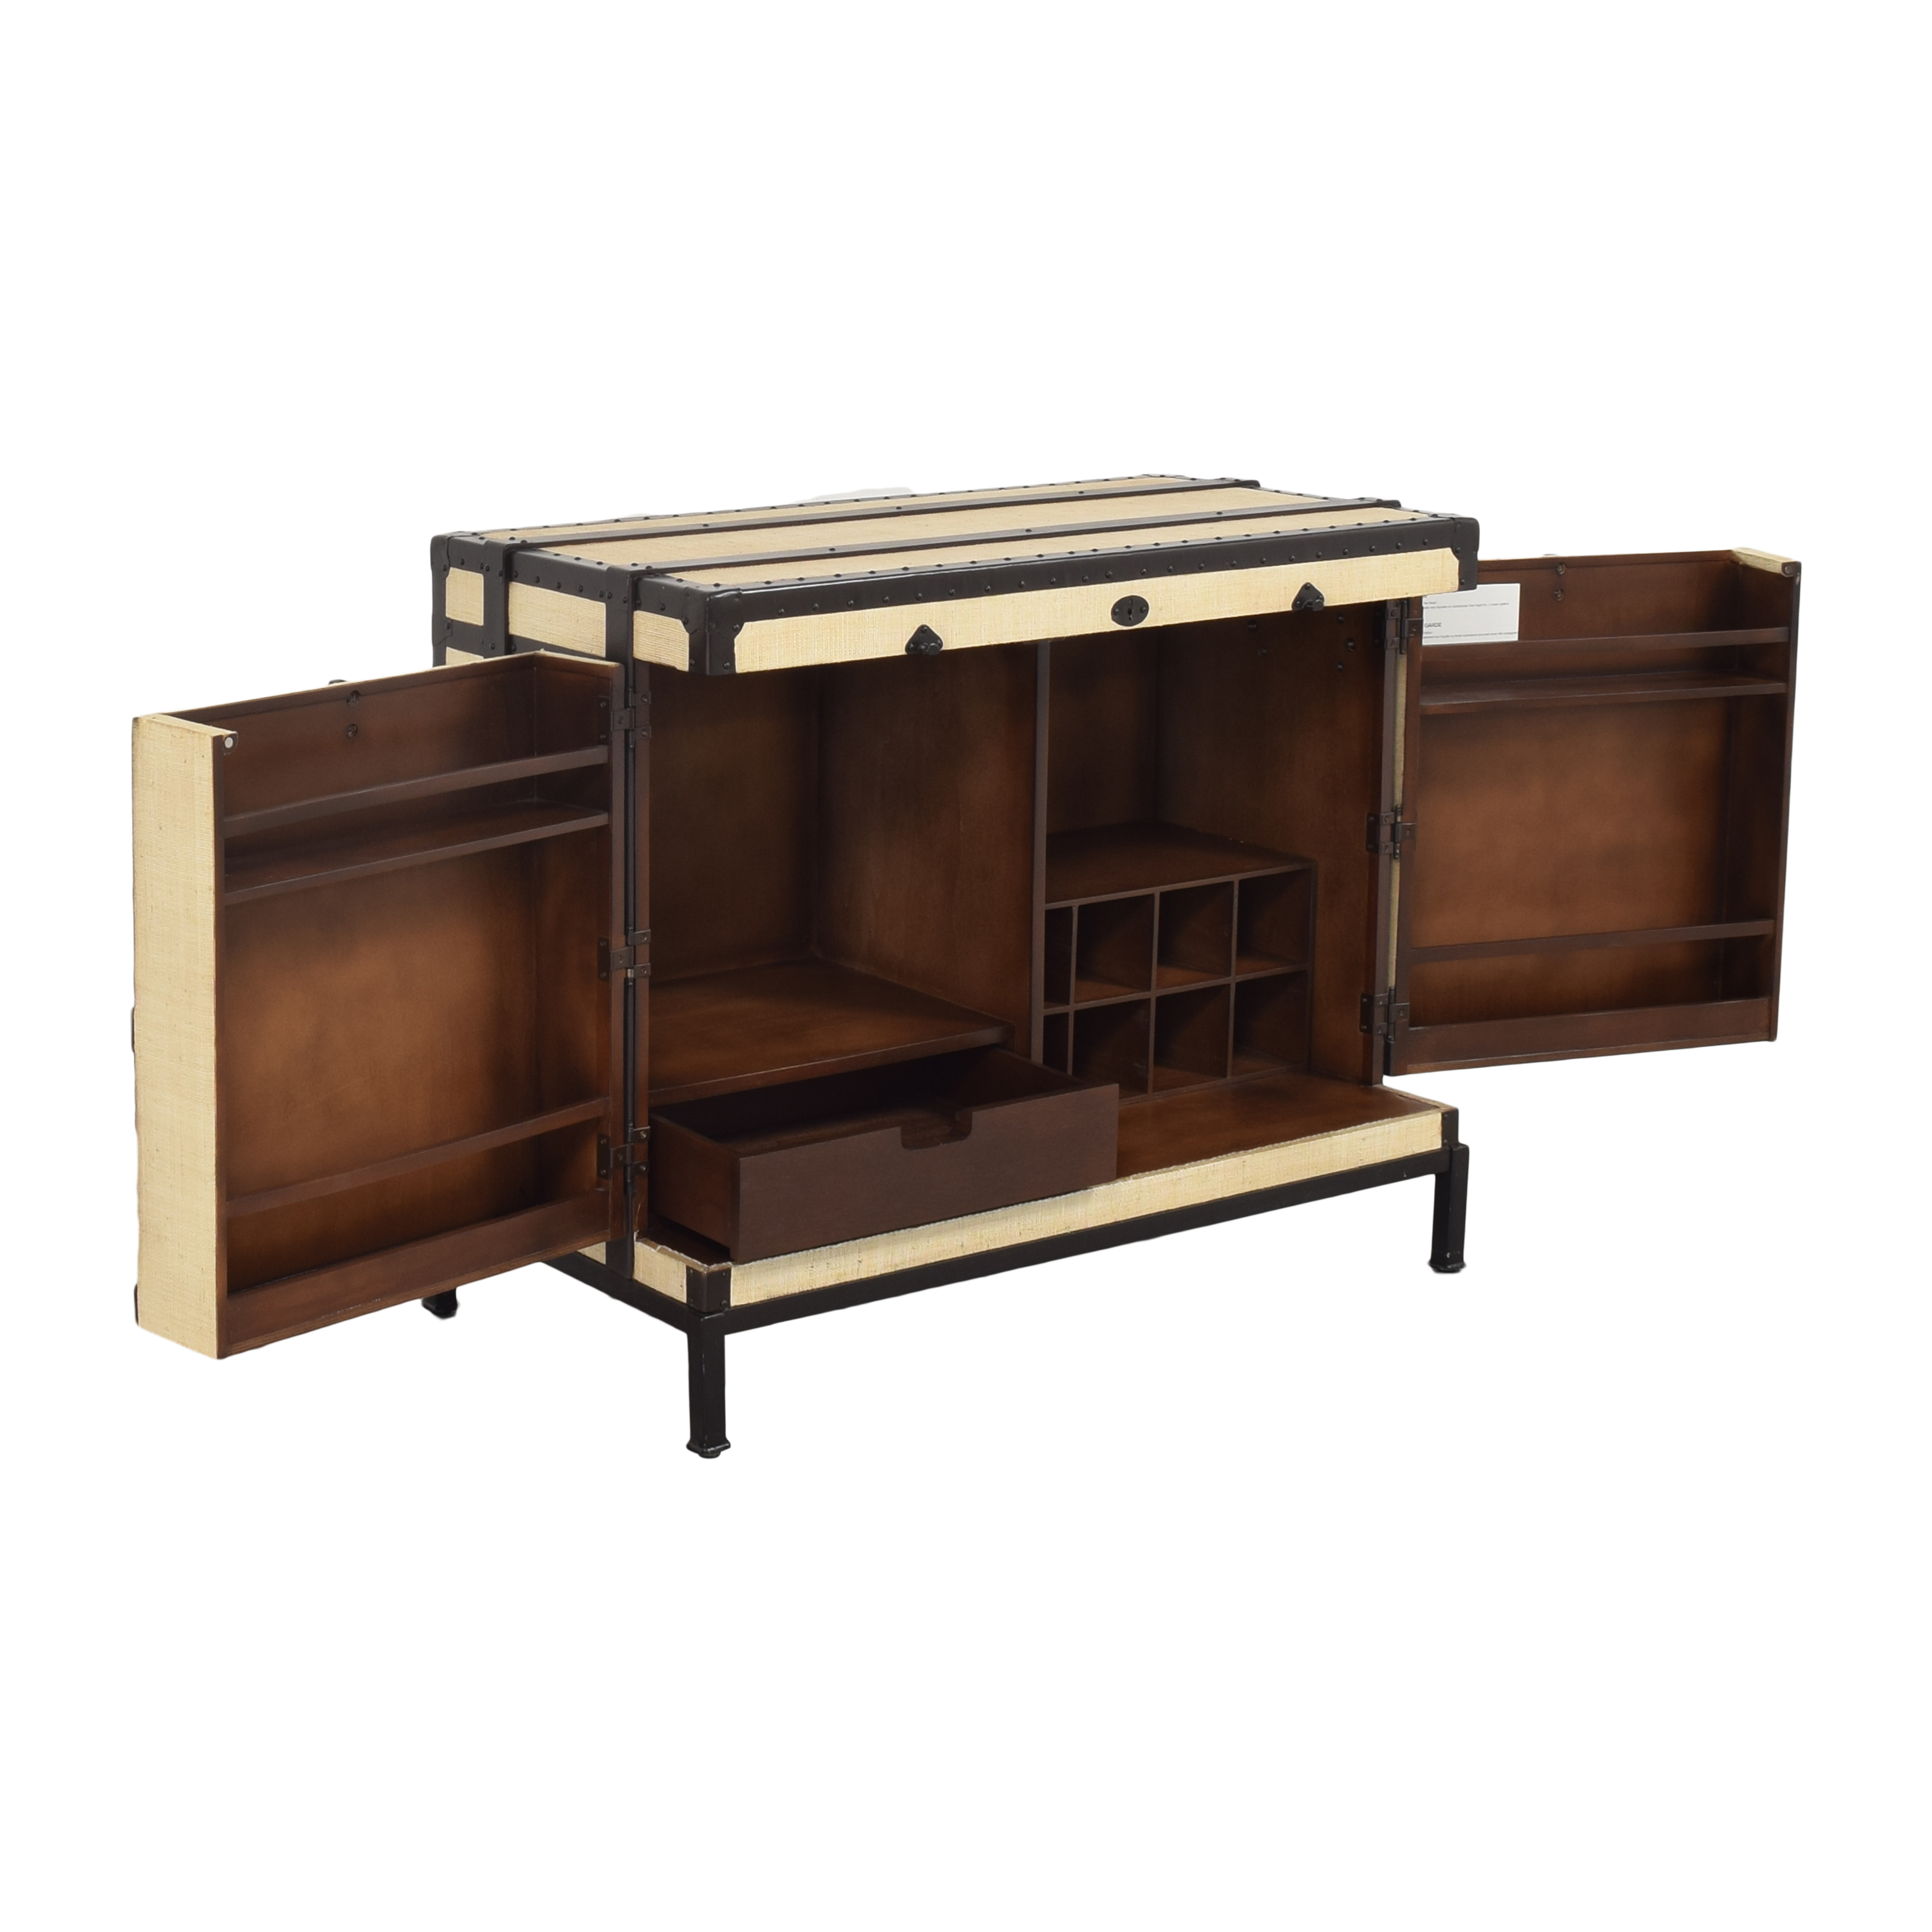 Pottery Barn Pottery Barn Ludlow Trunk Bar Cabinet for sale